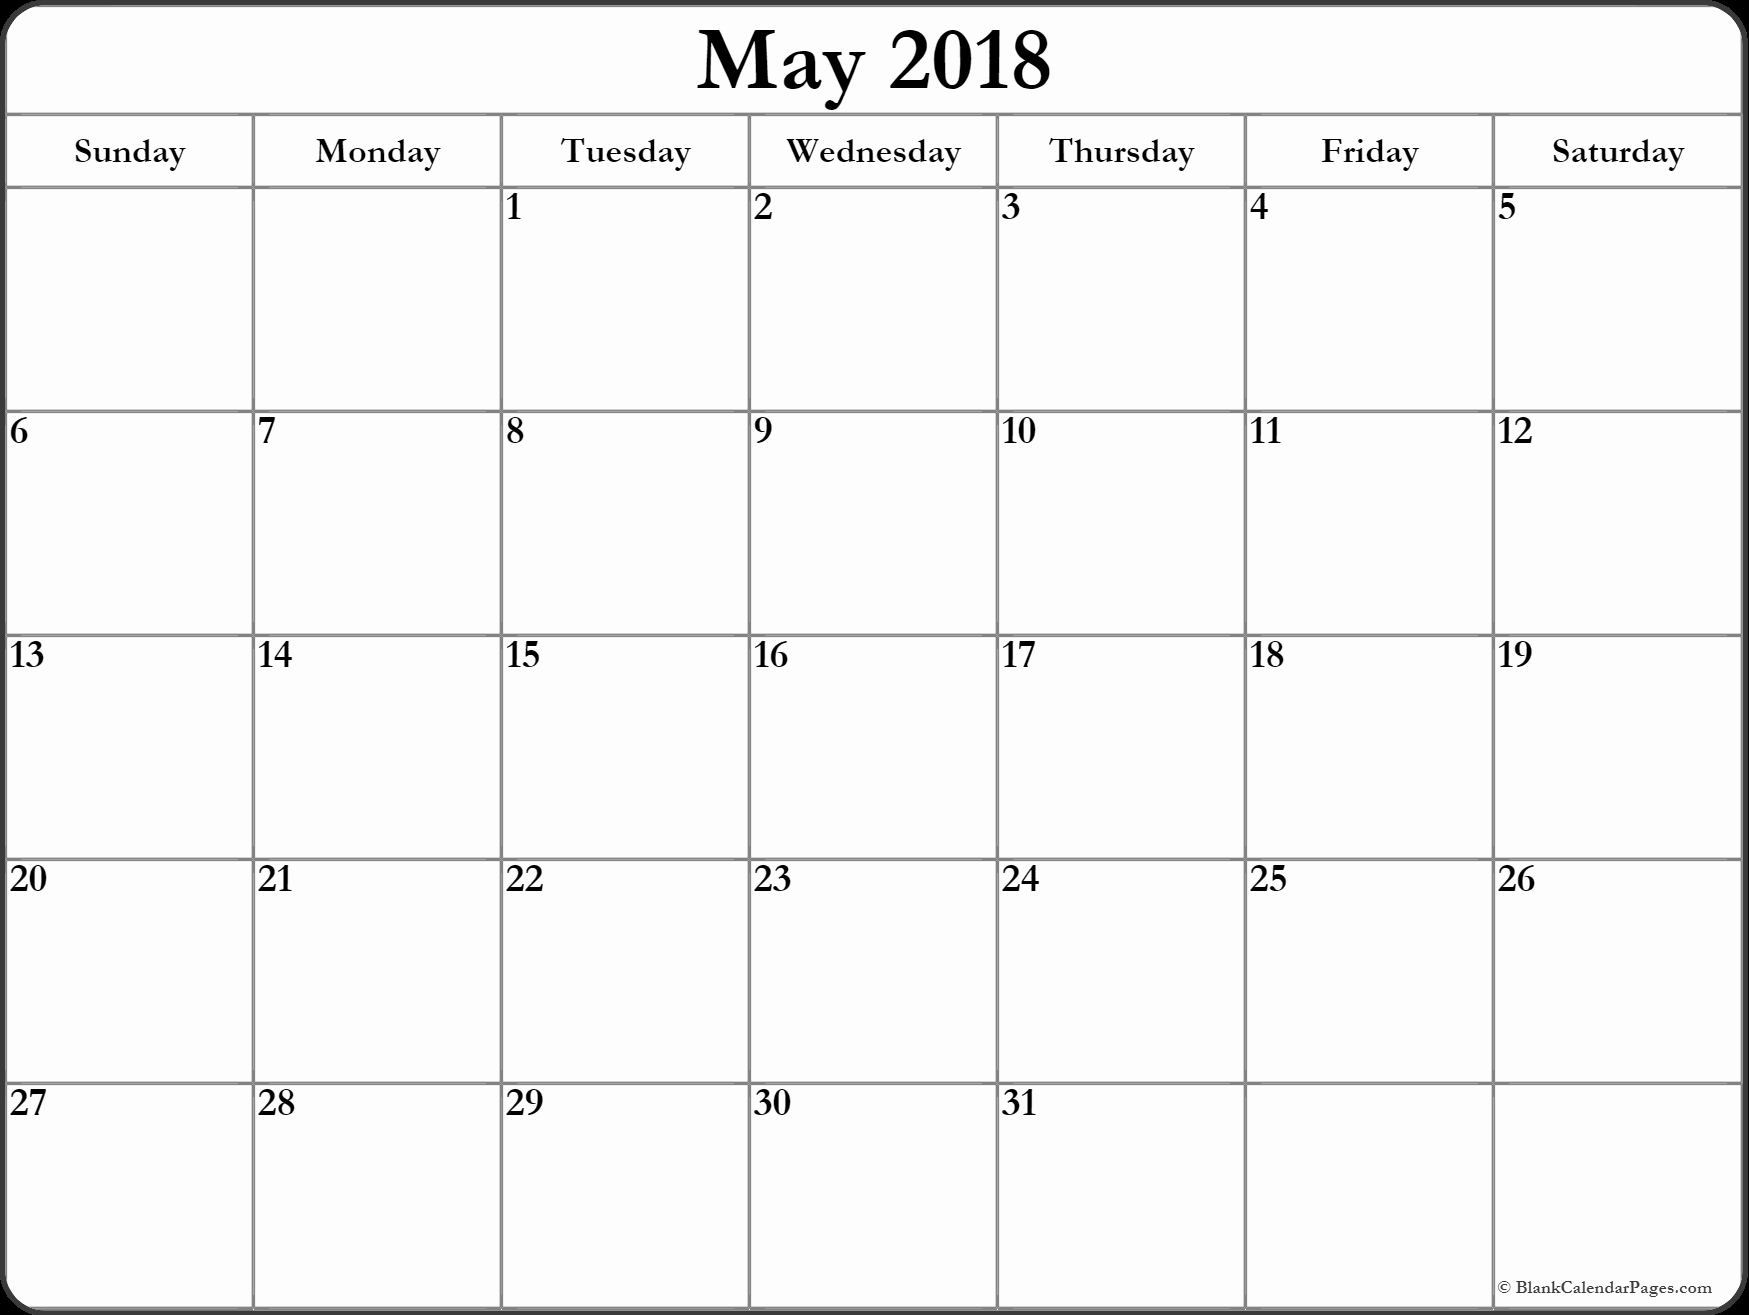 Blank May 2018 Calendar Printable Awesome May 2018 Printable Calendar 8 Free Blank Templates